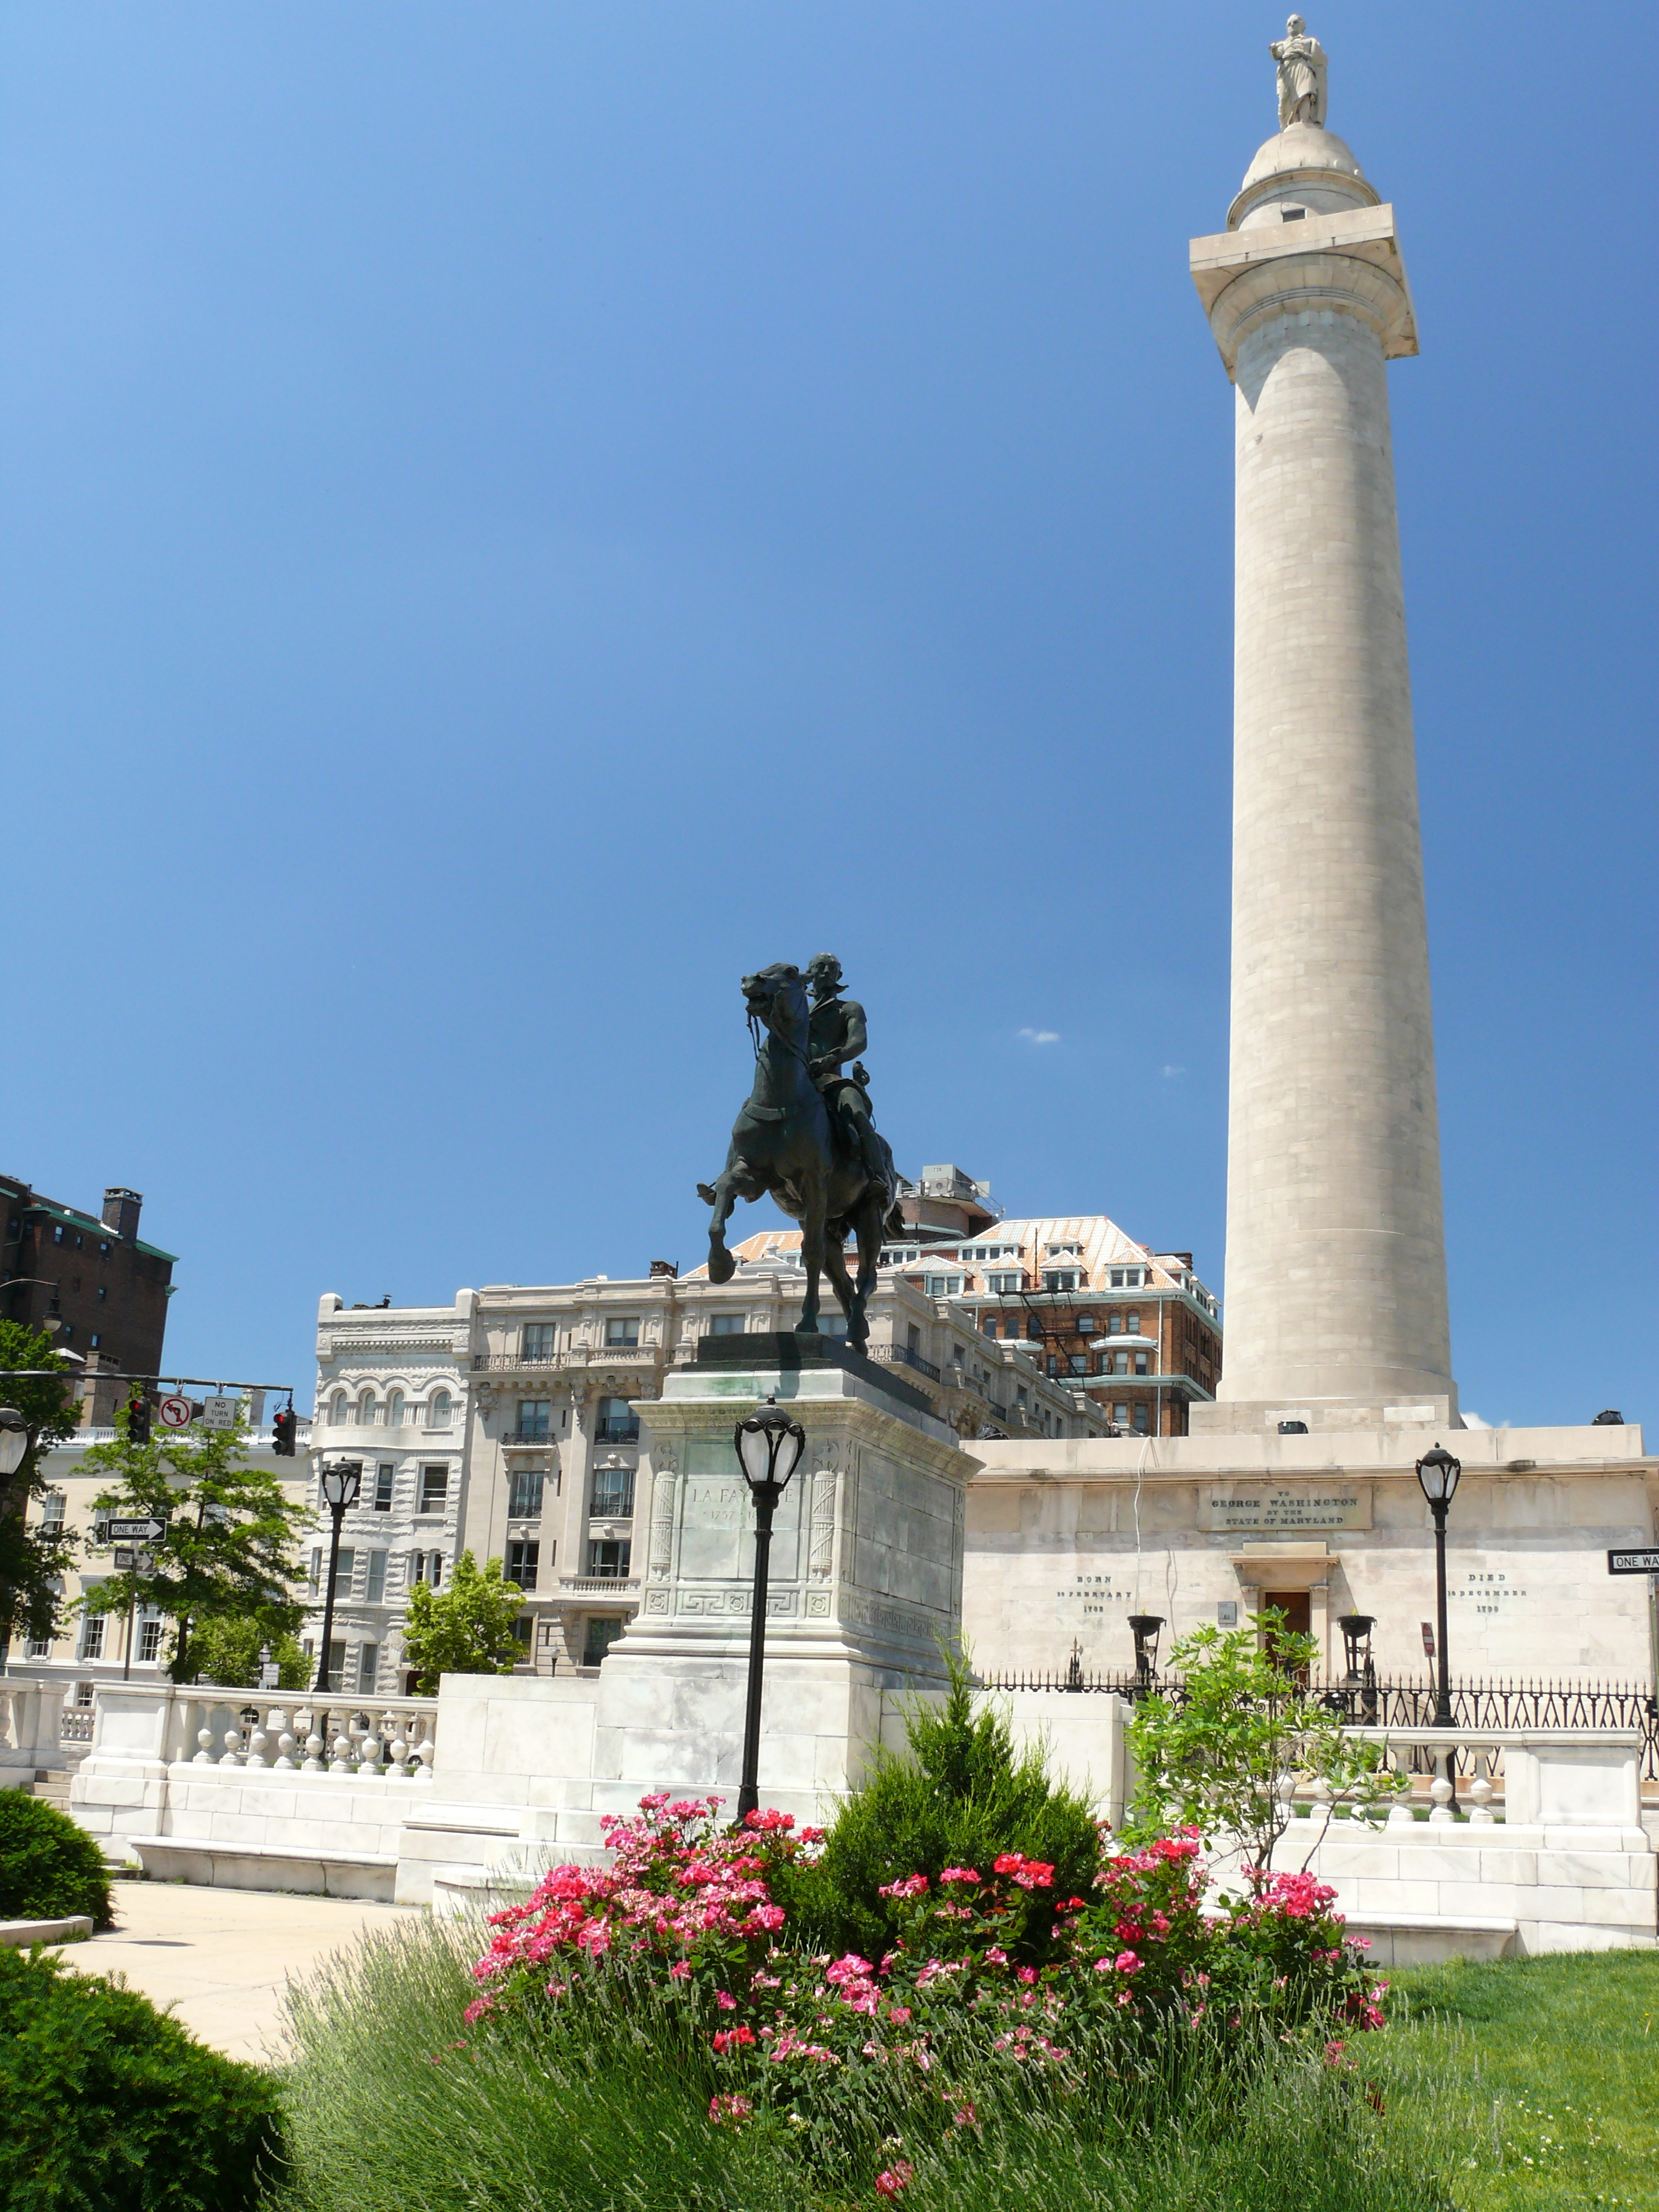 The first Washington Monument, in Baltimore, Maryland